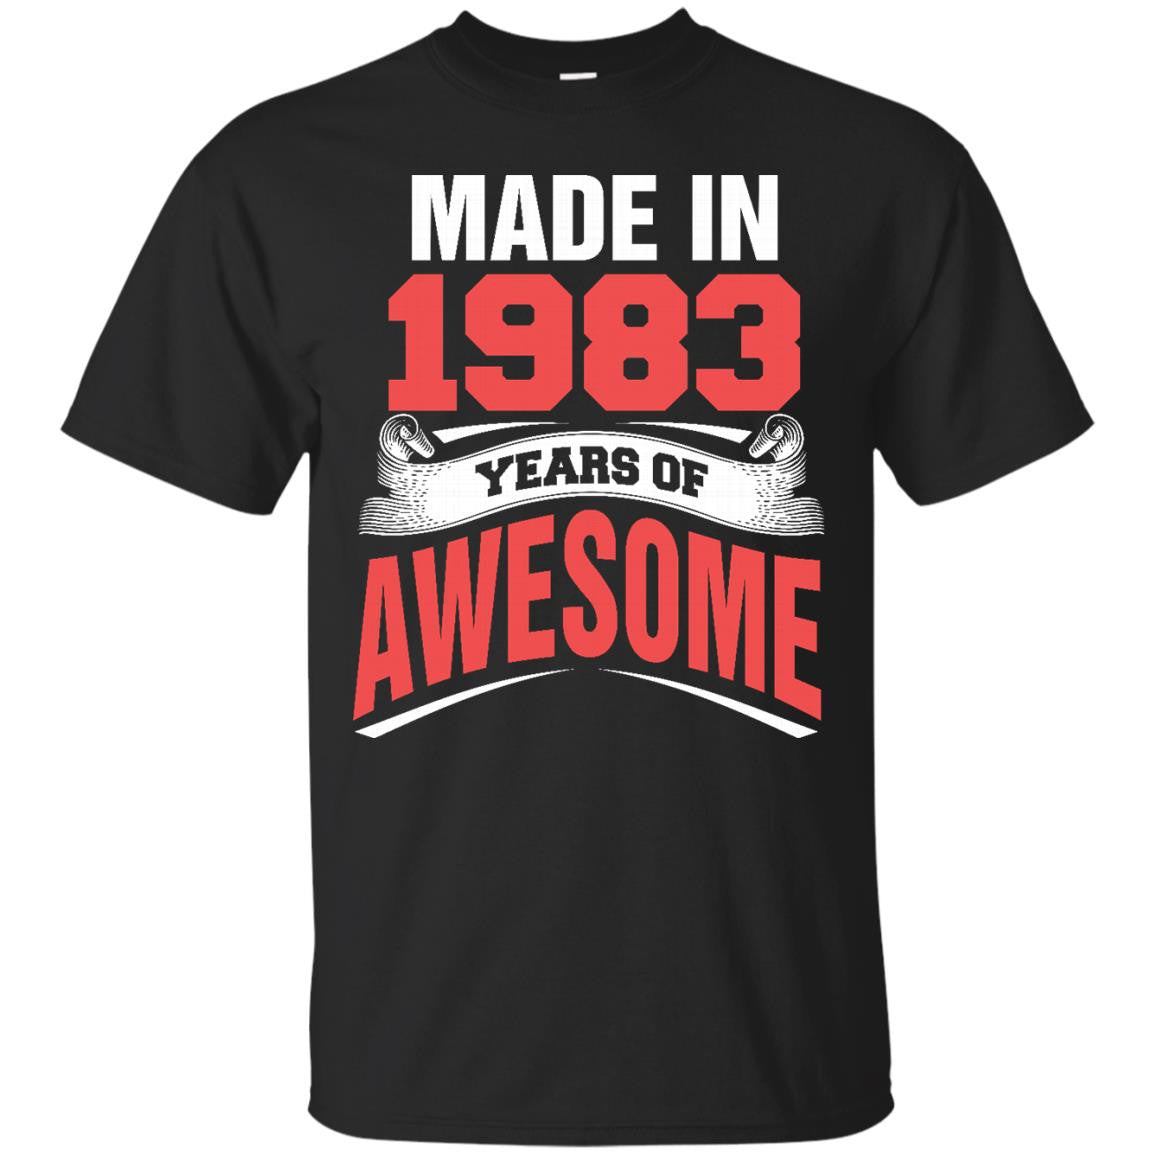 1983 Shirts Made In 1983 Year of Awesome T-shirts Hoodies Sweatshirts